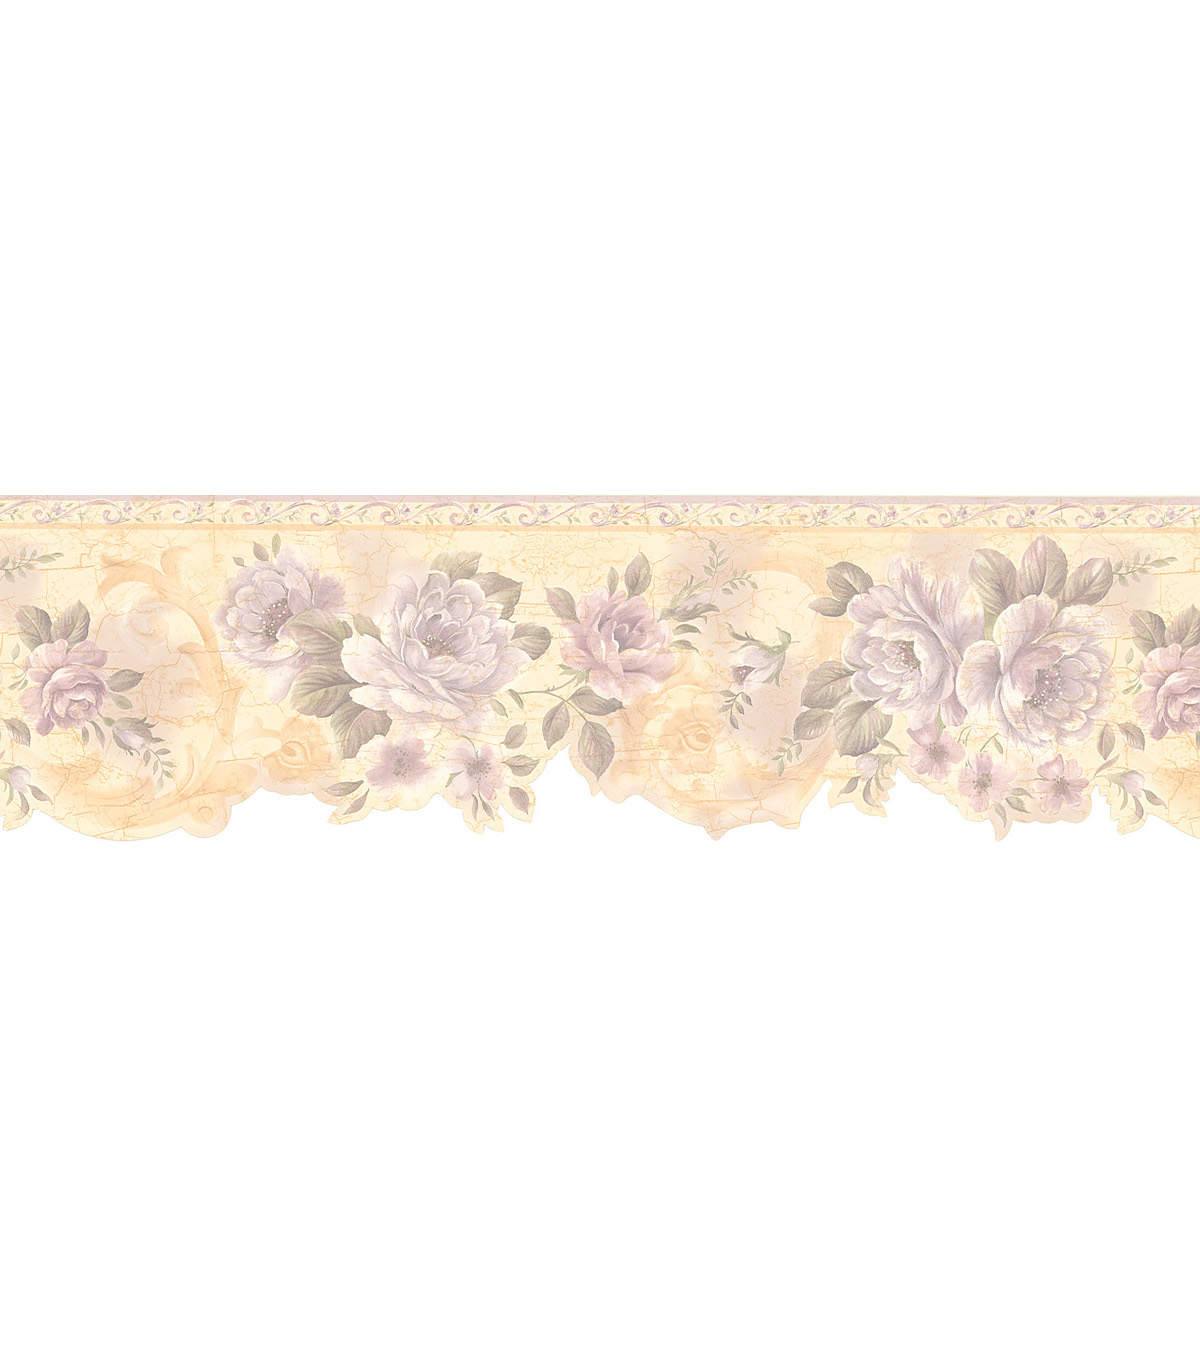 Flower Scroll Die-Cut Wallpaper Border, Cream Sample